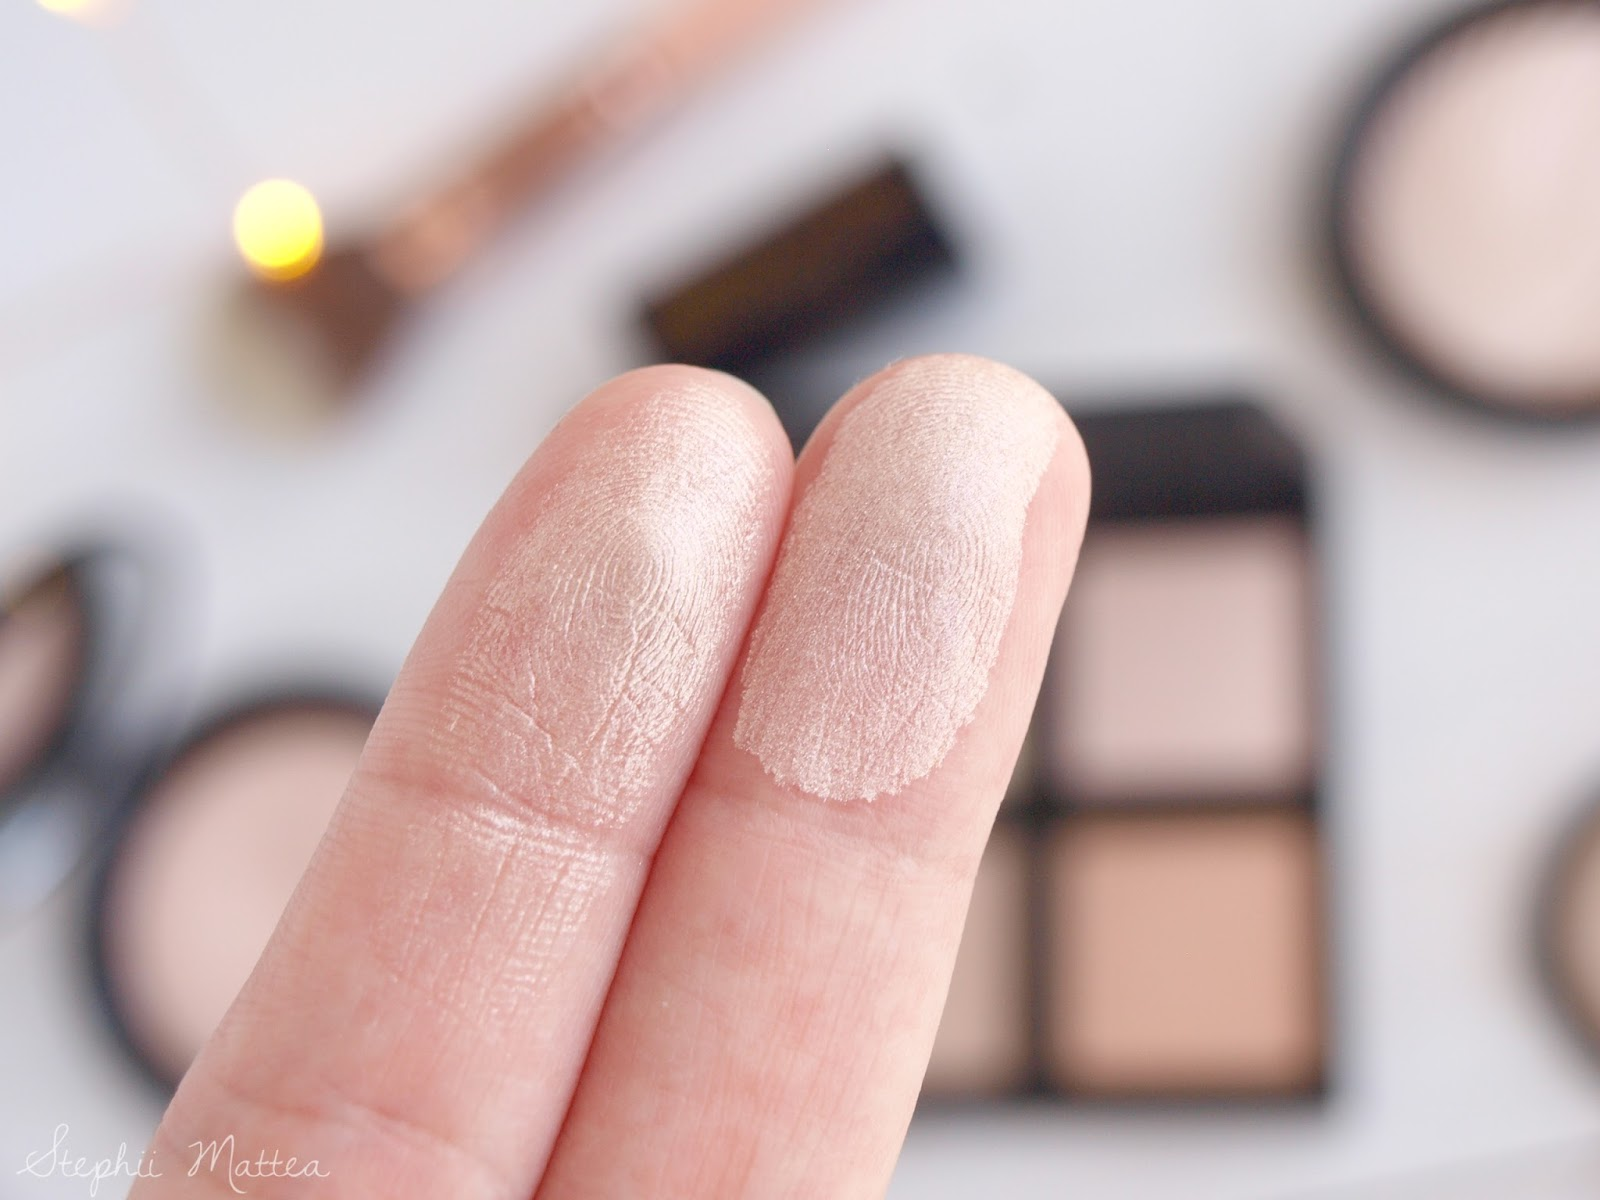 The Battle of the Baked Highlighters: e.l.f Cosmetics Baked Highlighter vs MUR Vivid Baked Highlighter